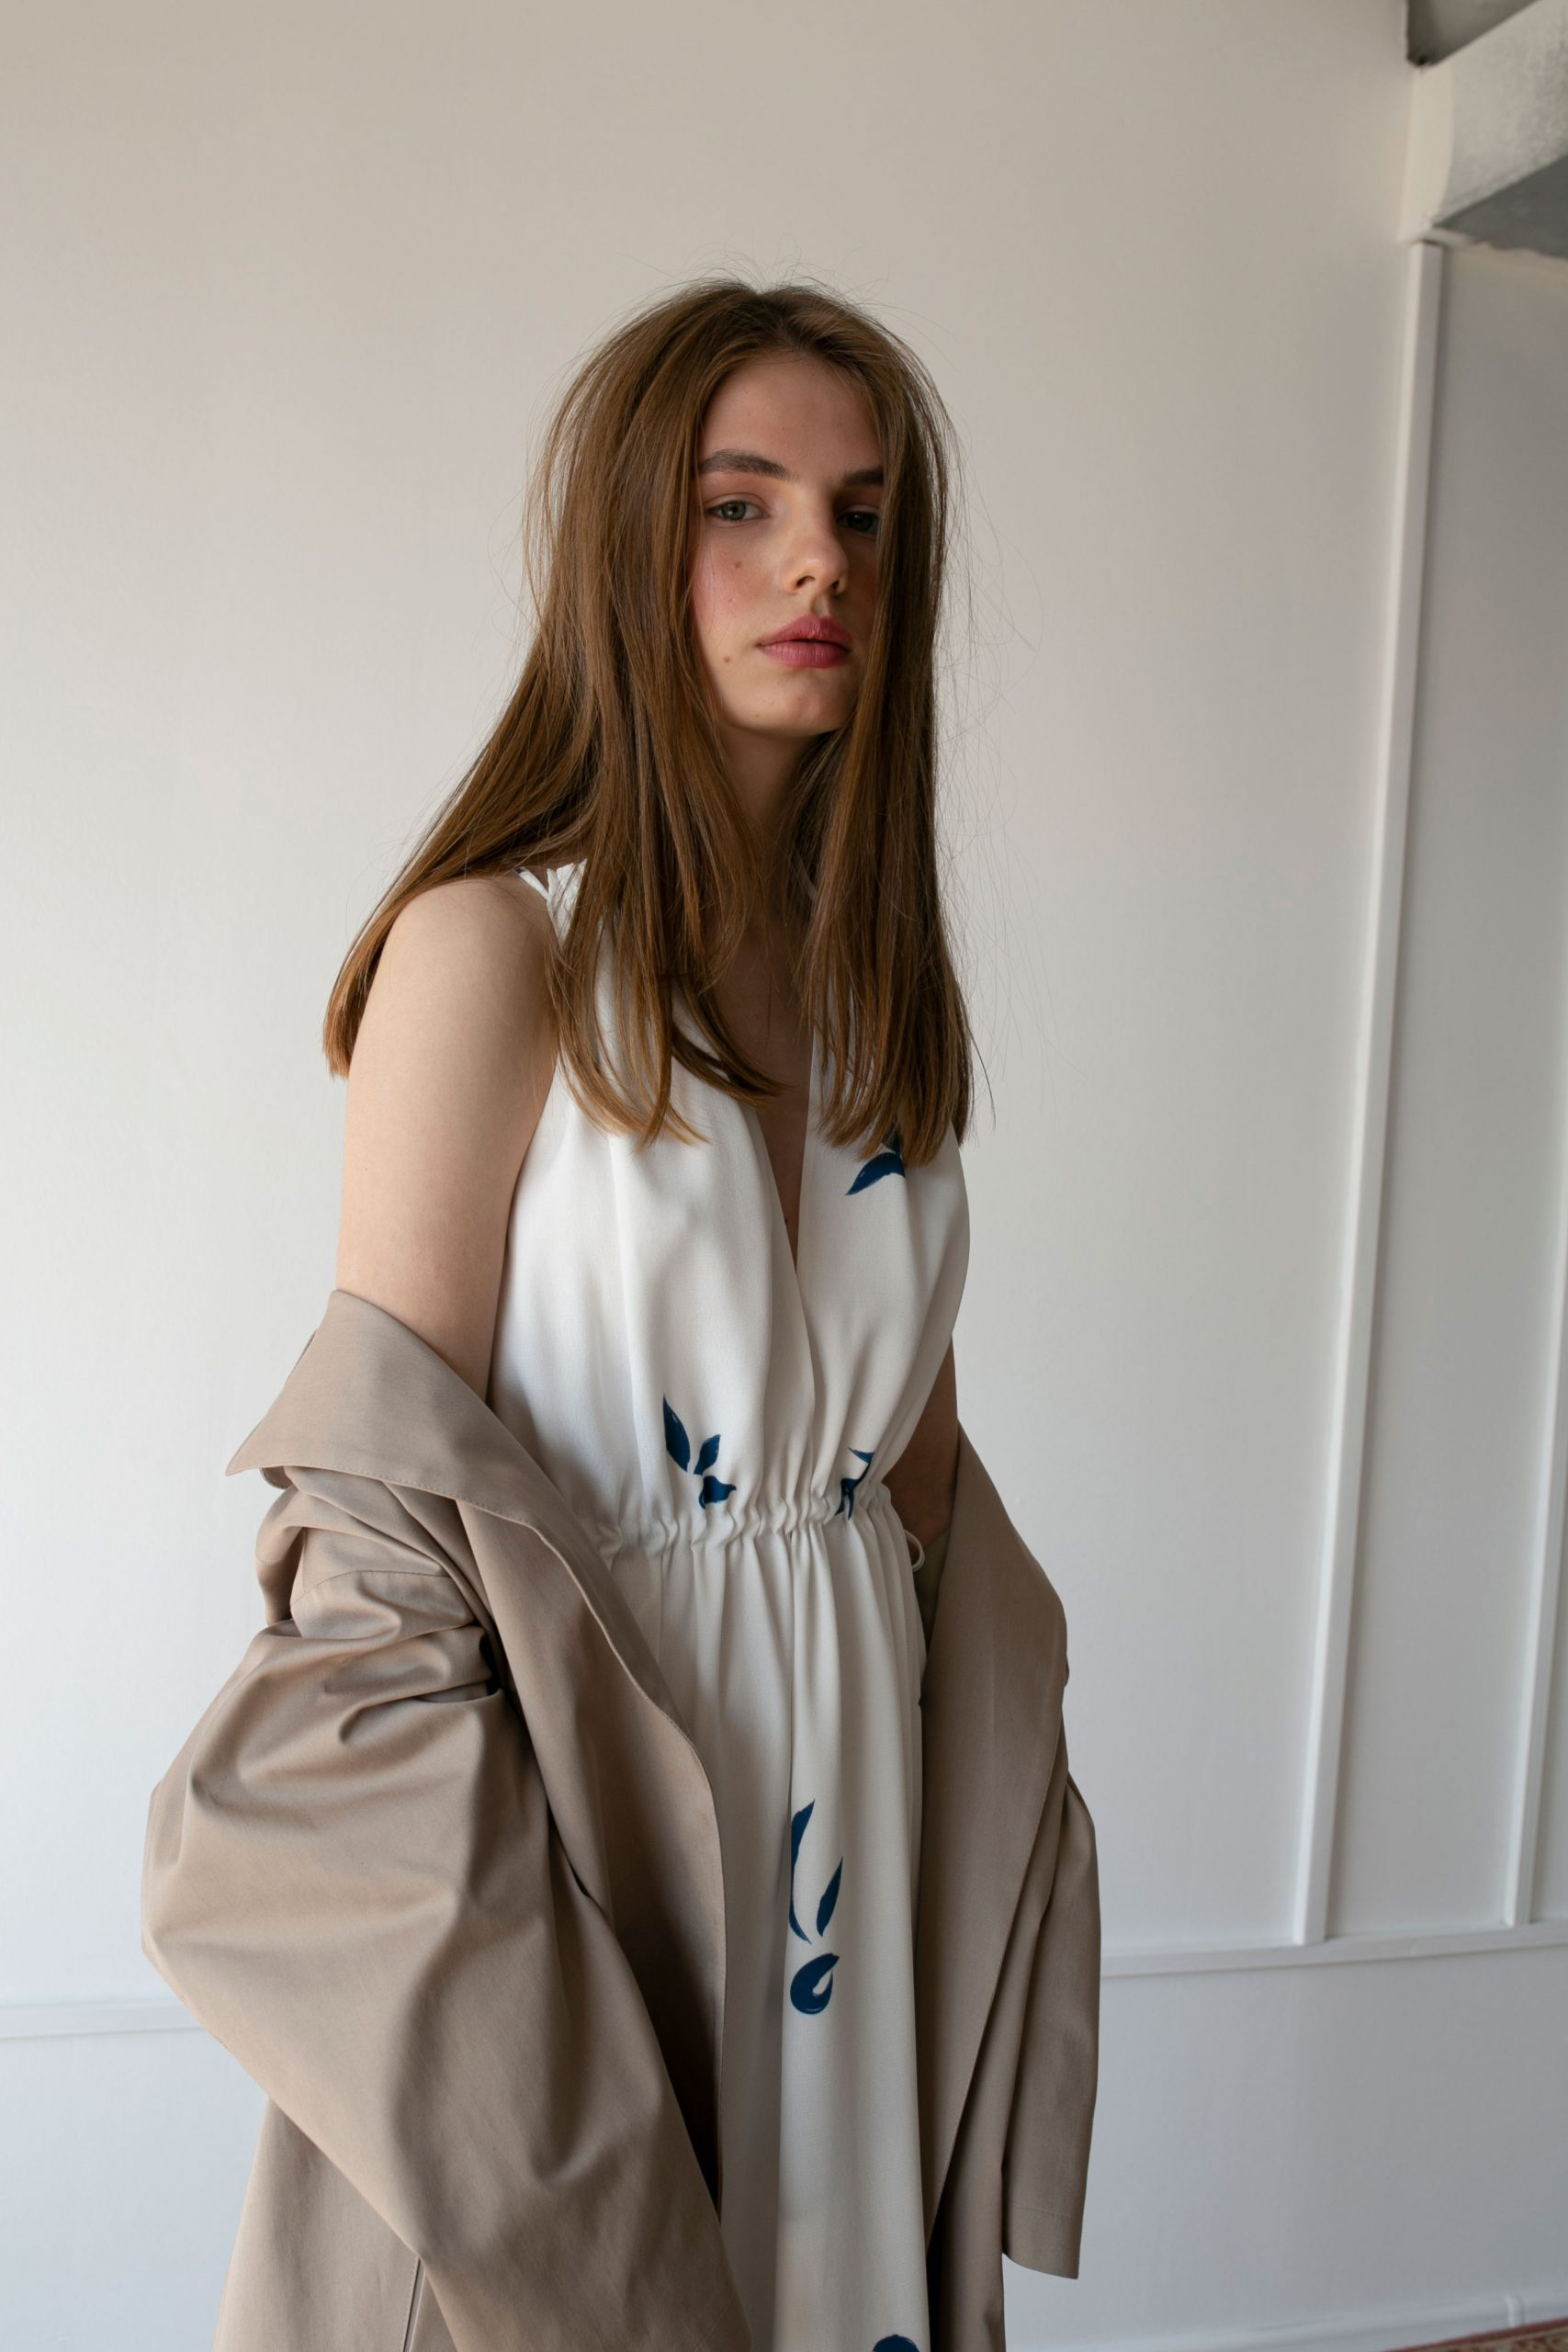 RAQUETTE SS20 - La Piscine string dress / Moondust trench